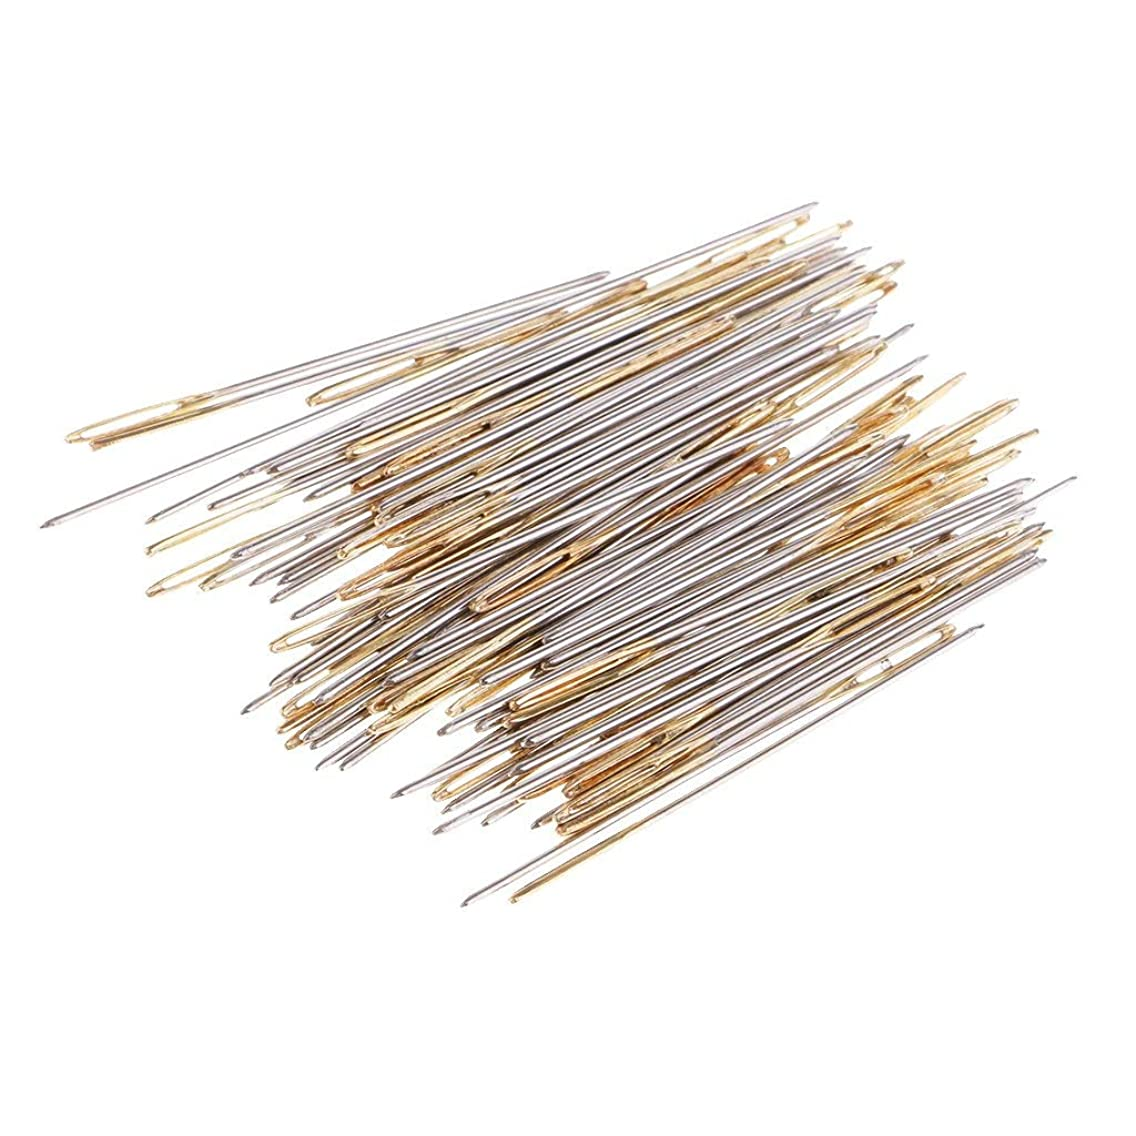 100 Pieces Mixed Silver Gold Cross Stitch Needles Large Eye Embroidery DIY Embroidery in Transparent Box (26#)